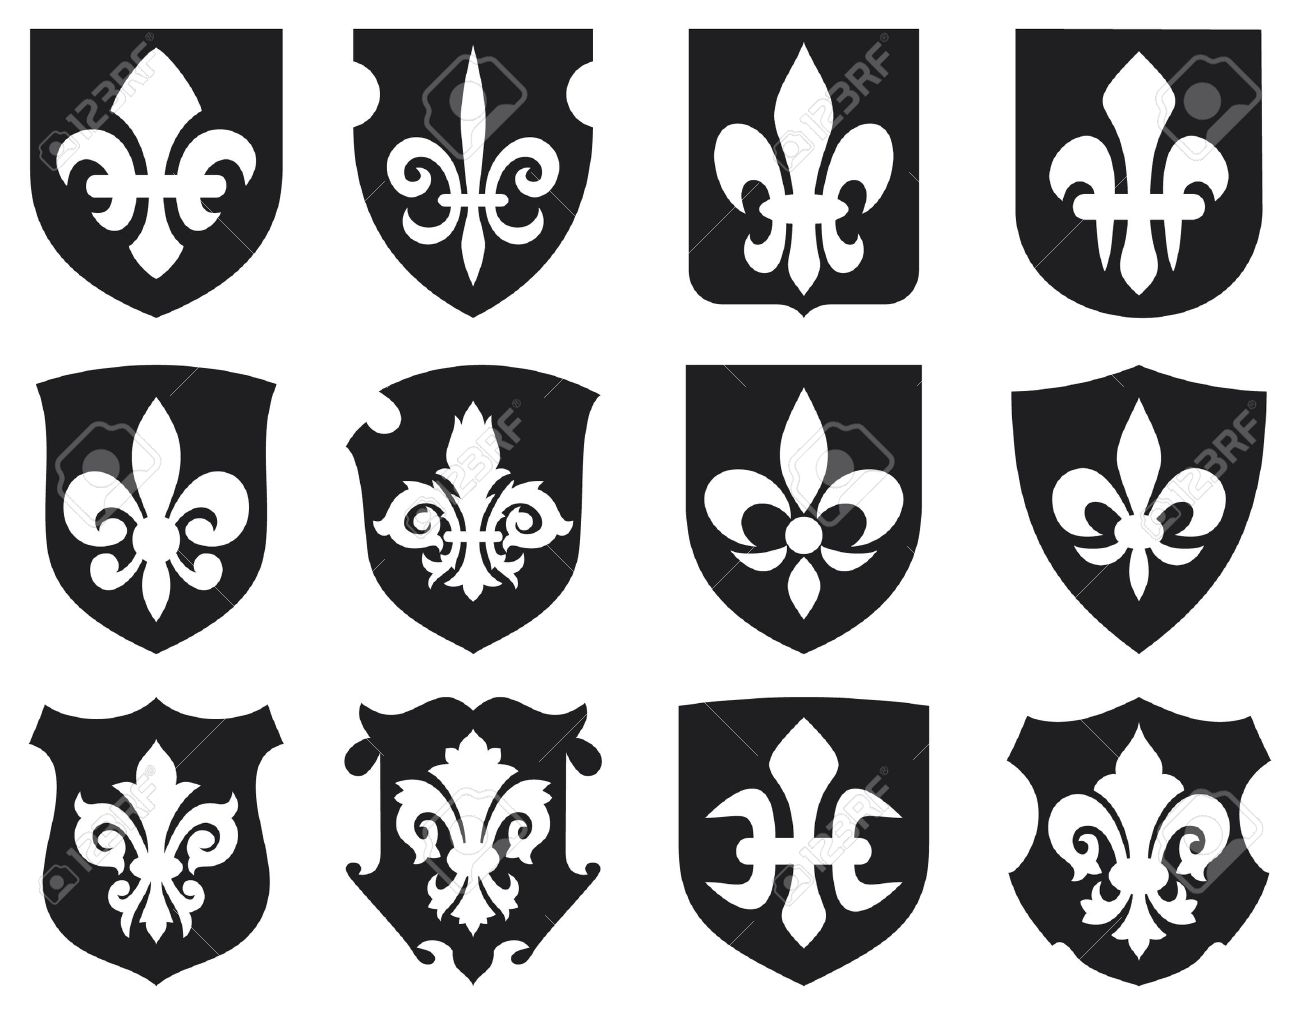 lily flower - heraldic symbol fleur de lis and medieval shields  royal french lily symbols for design and decorate, lily flowers collection, lily flowers set, shields set Stock Vector - 15686820